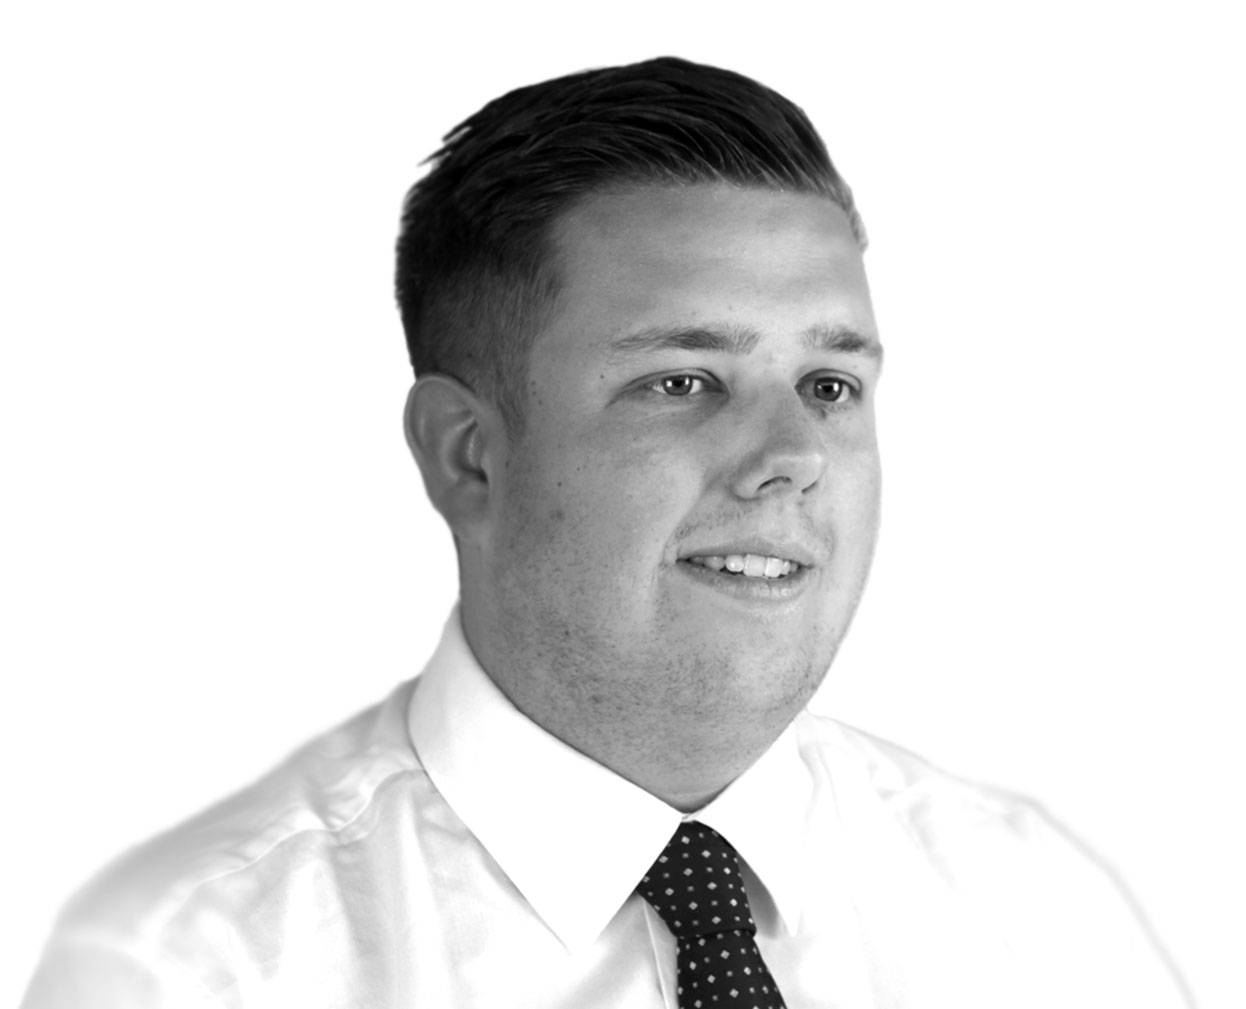 James Hookway, Divisional Manager